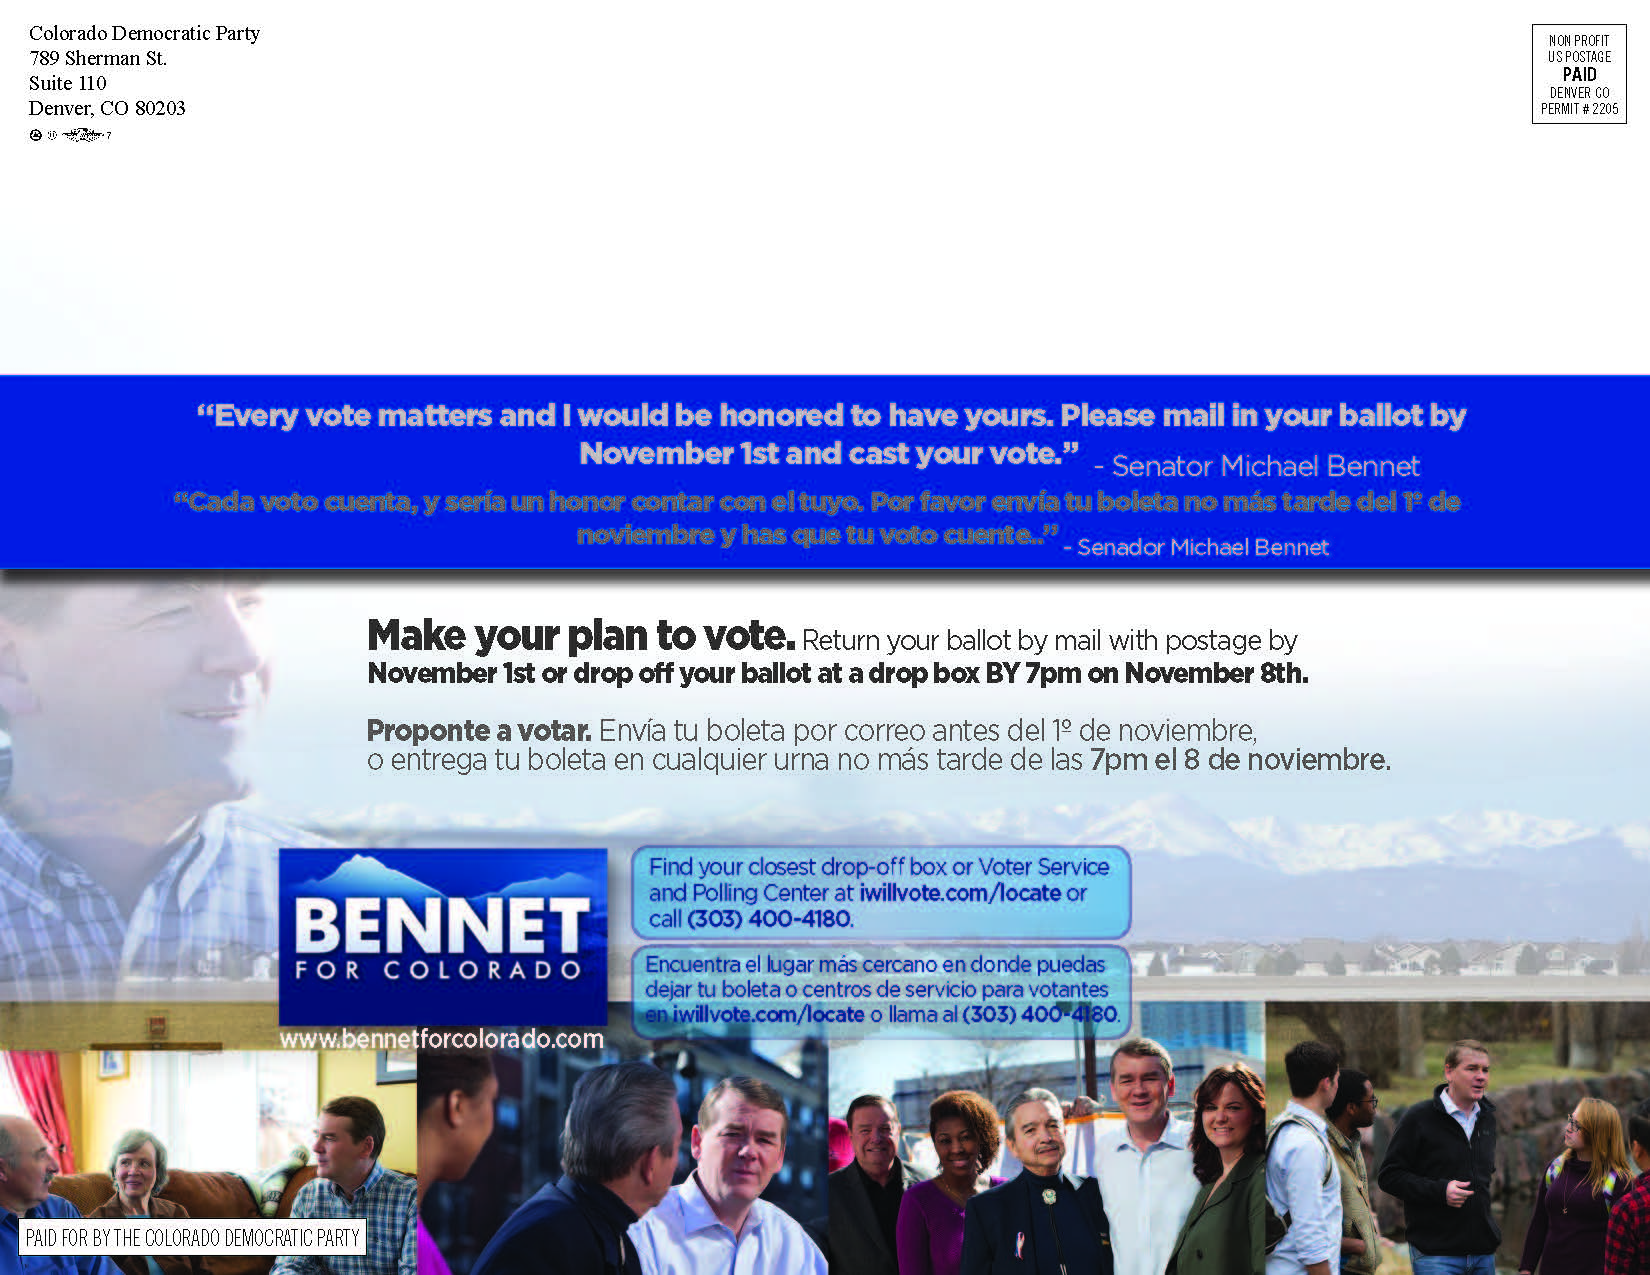 Bennet_Yours_Mailer_MC16.proof (1)_Page_2.jpg